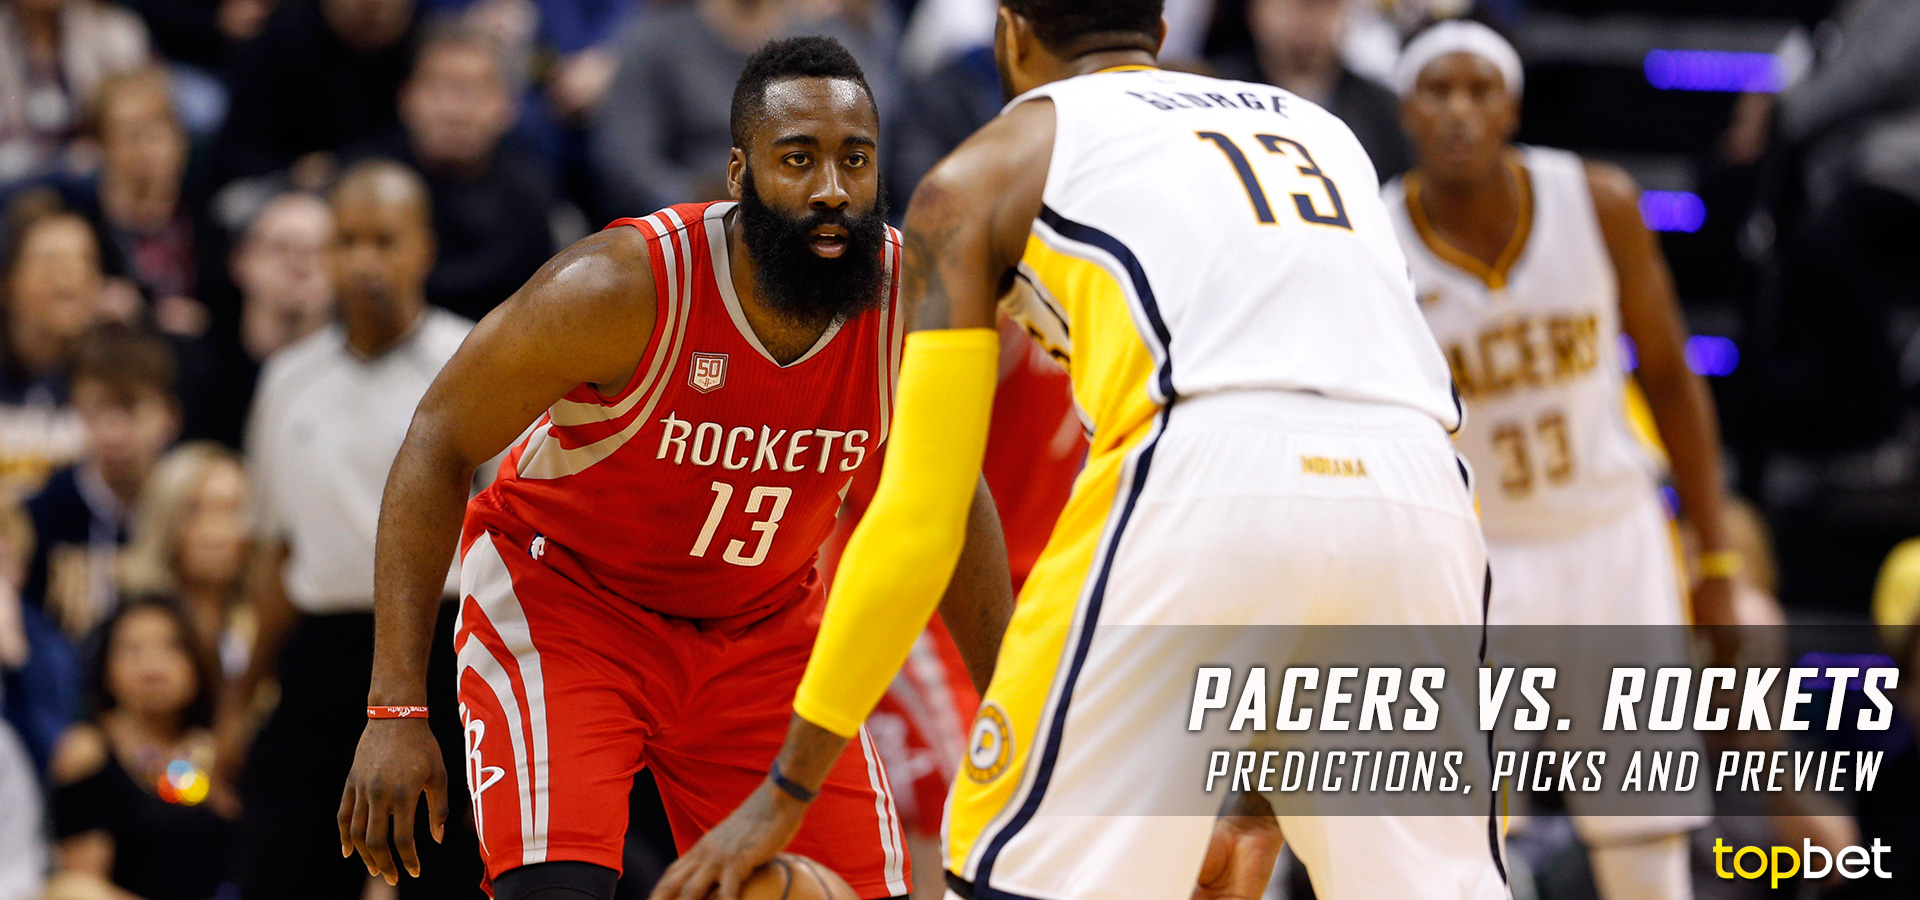 pacers vs rockets - photo #36